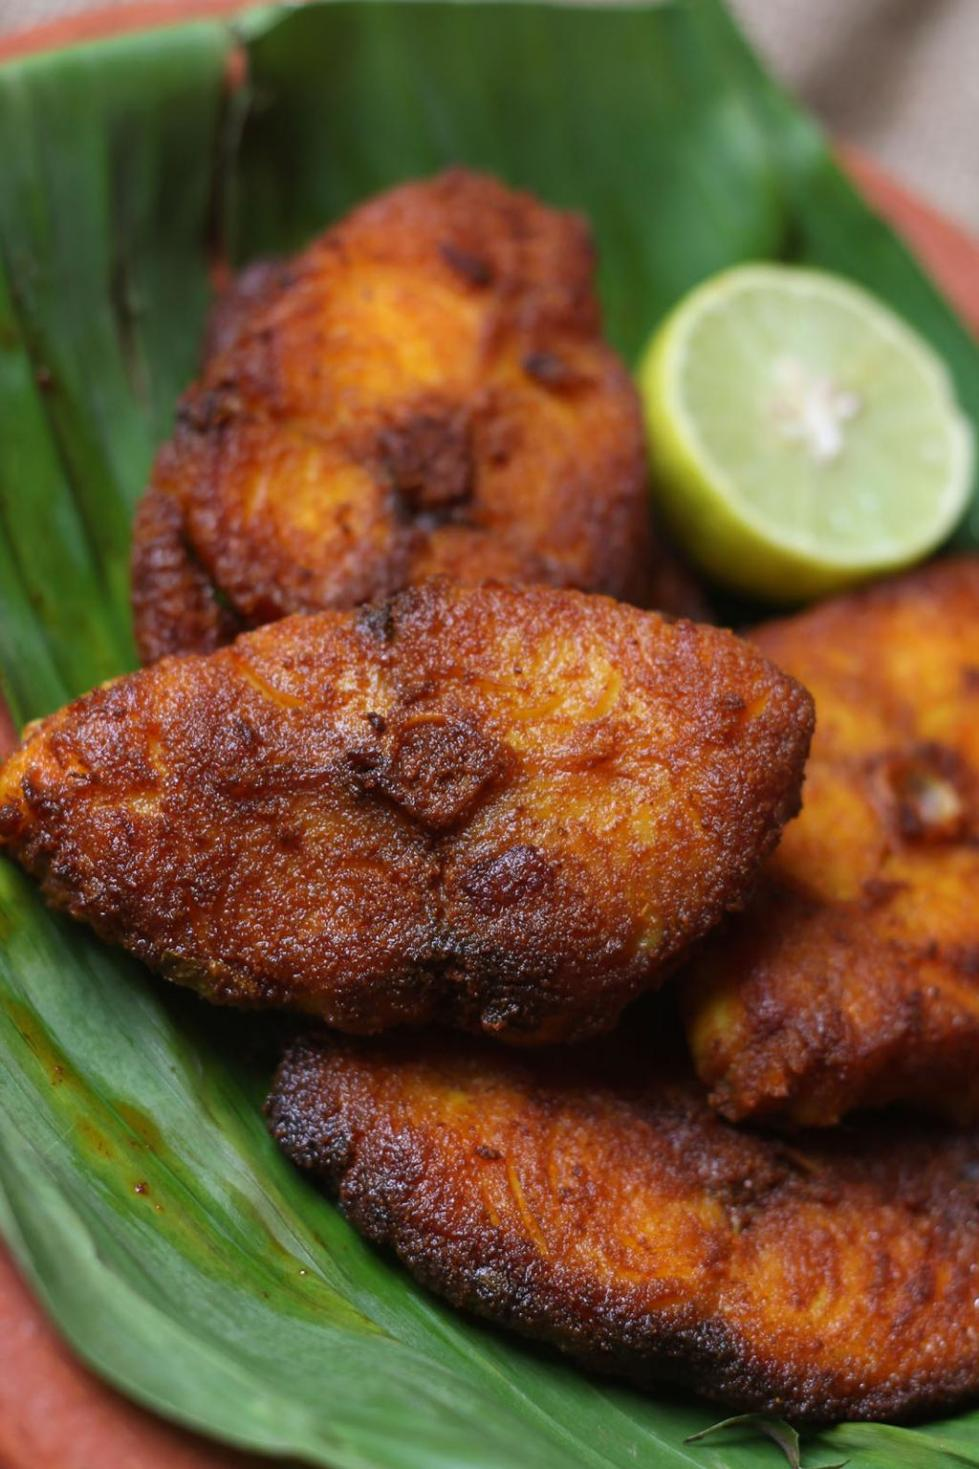 Kerala fish fry meen varuthathu recipe sujis cooking spicy fish fry is an important item in the south indian non vegetarian mealsy south indian non vegetarian meal is incomplete with out this delicacy forumfinder Images